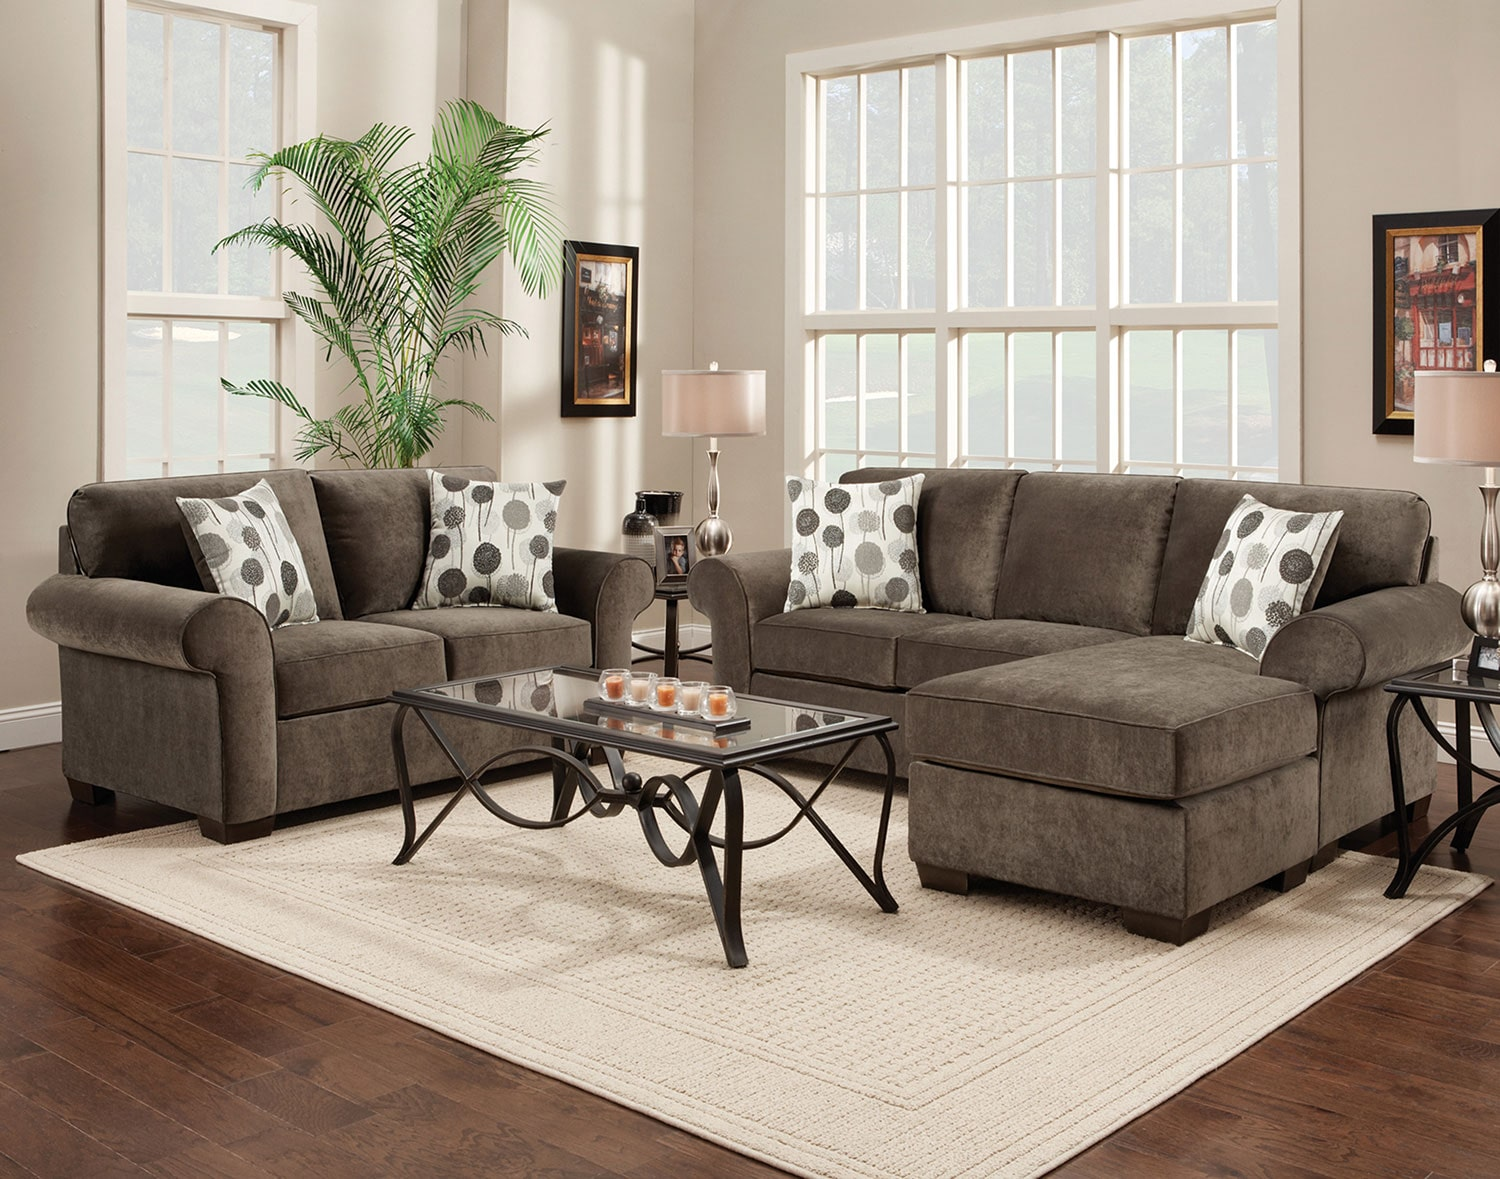 The Roseville Collection